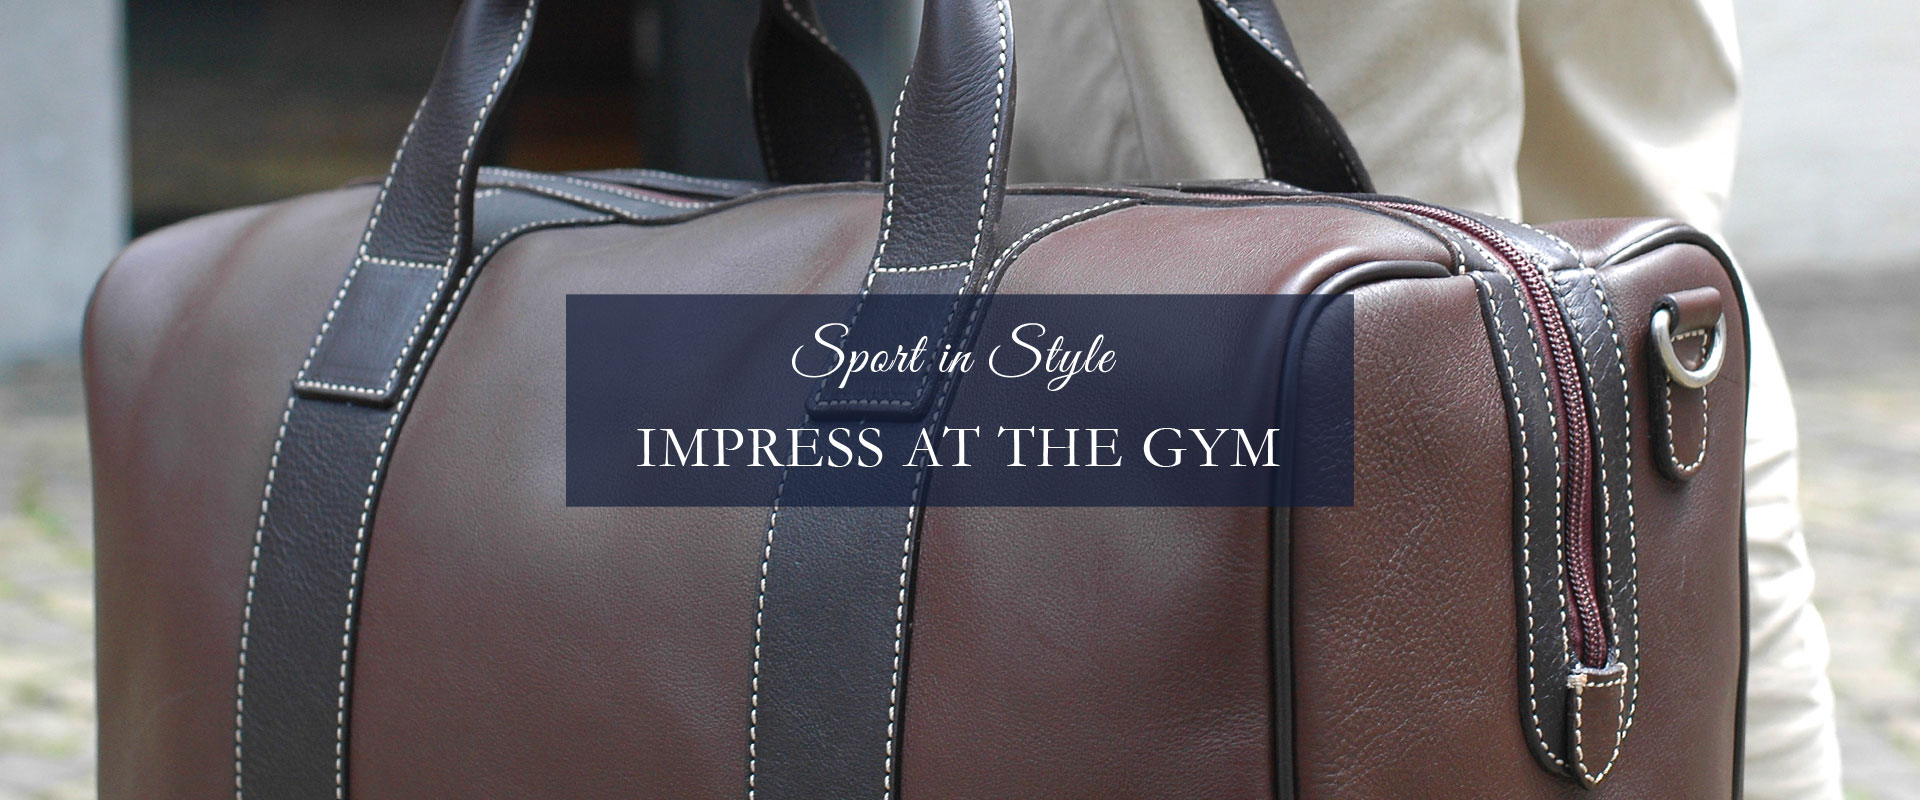 Impress at the gym